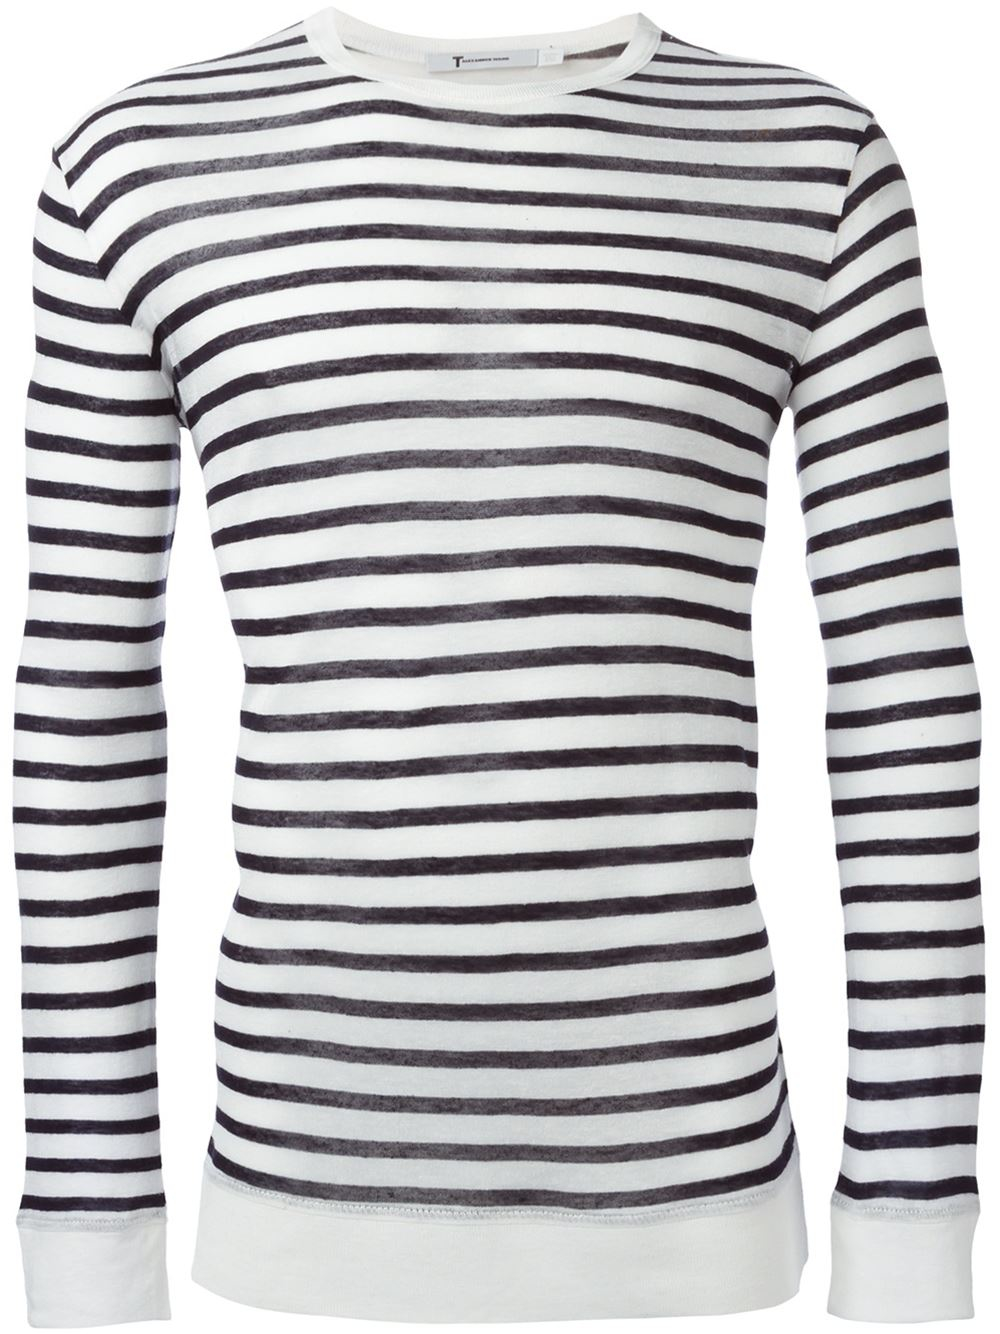 T by alexander wang striped long sleeve t shirt in blue Striped long sleeve t shirt